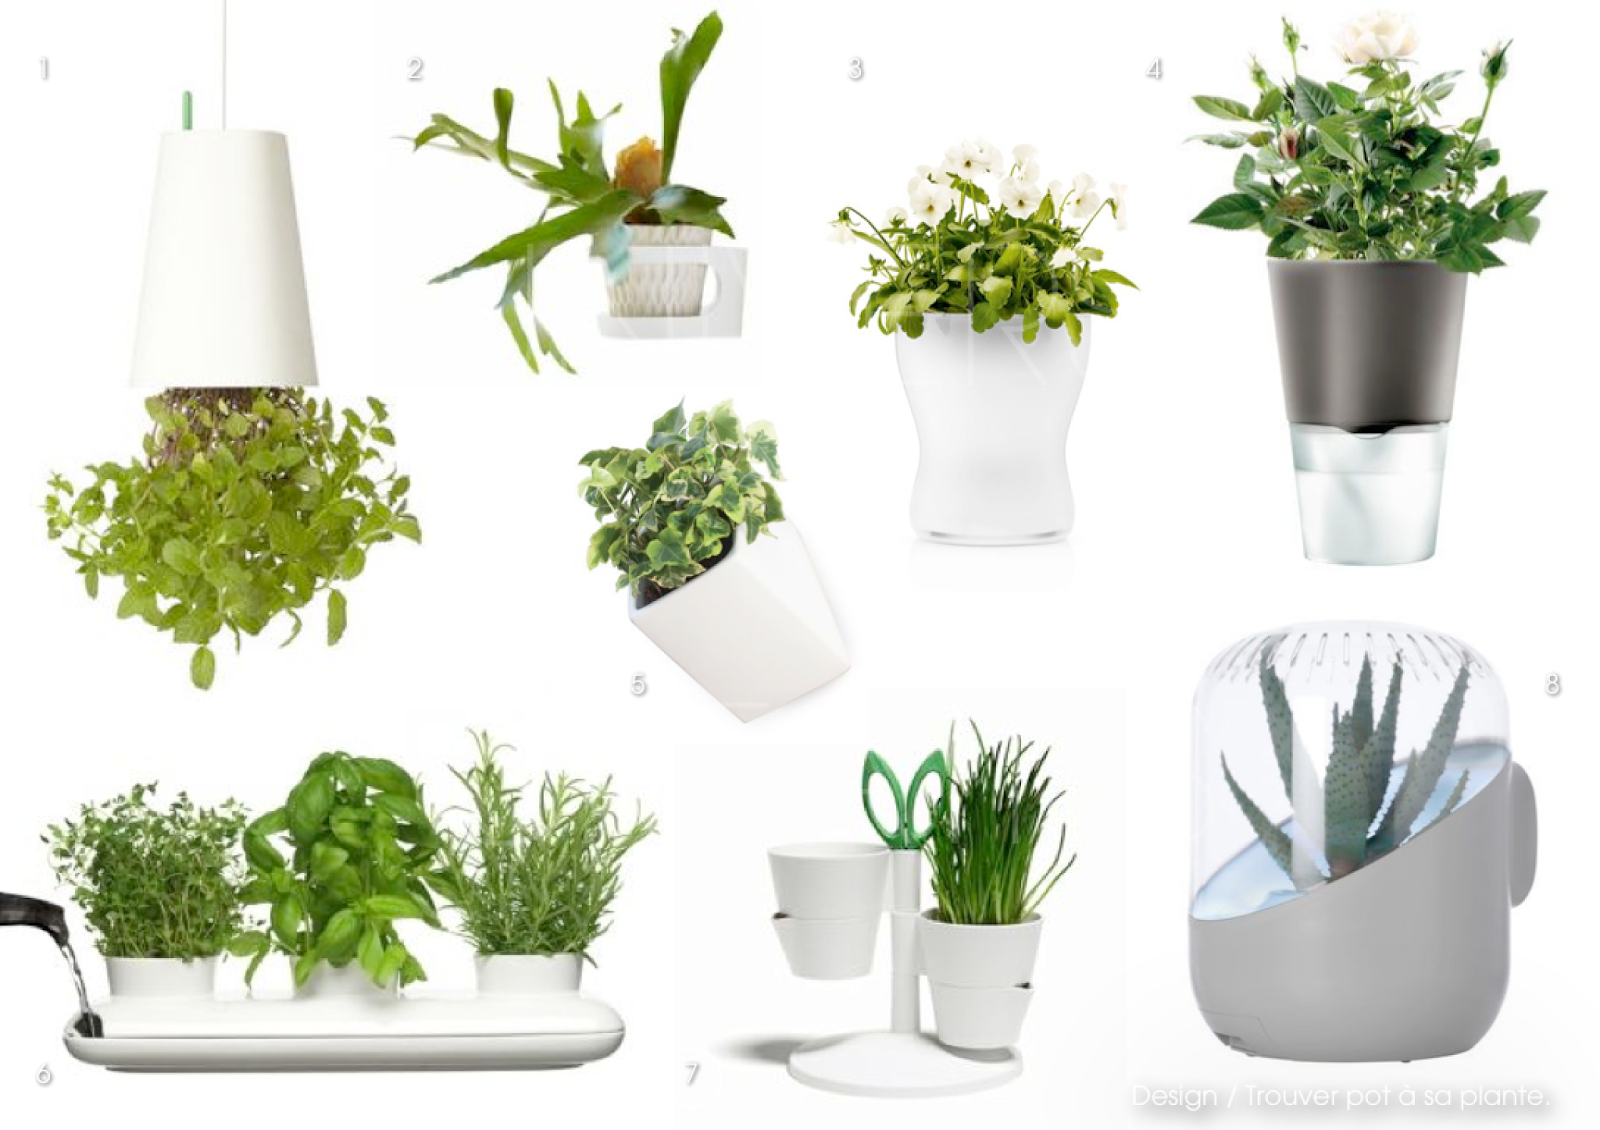 Univers creatifs design trouver pot sa plante for Plante design d interieur